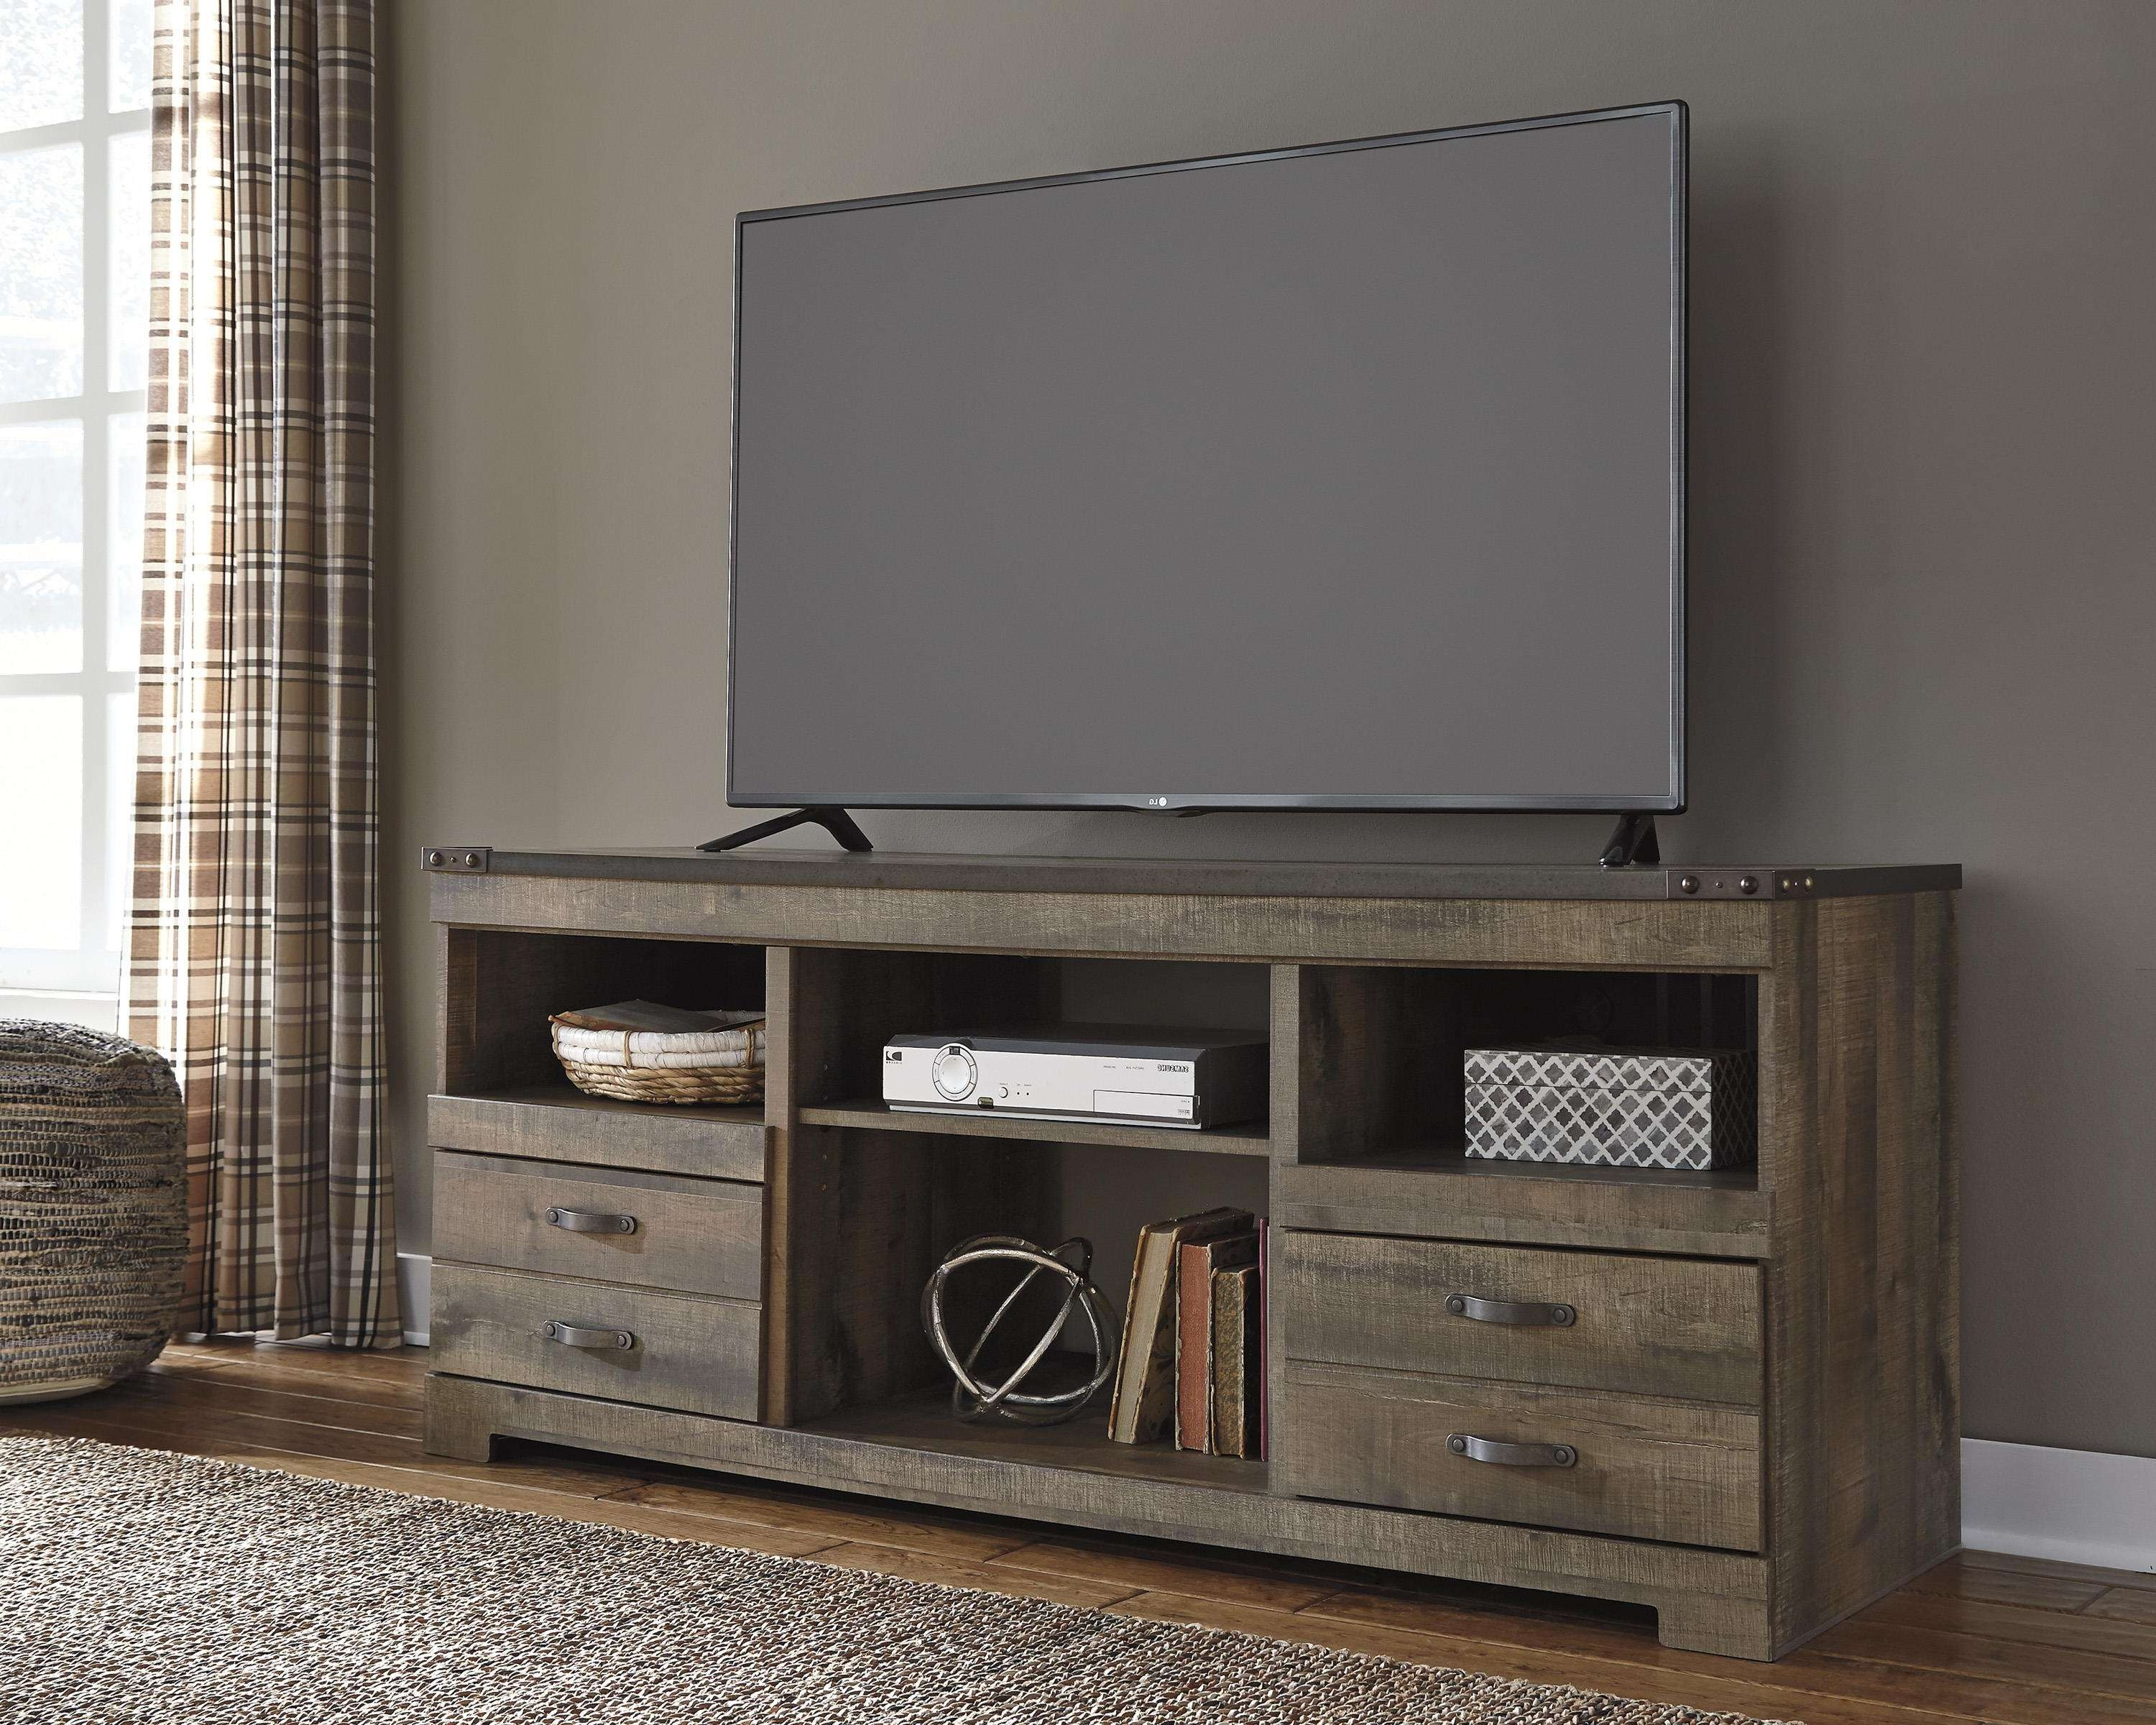 Tv : Tv Stand Images Amazing Stands And Deliver Tv Stands Buy Avf With Regard To Stand And Deliver Tv Stands (View 13 of 20)